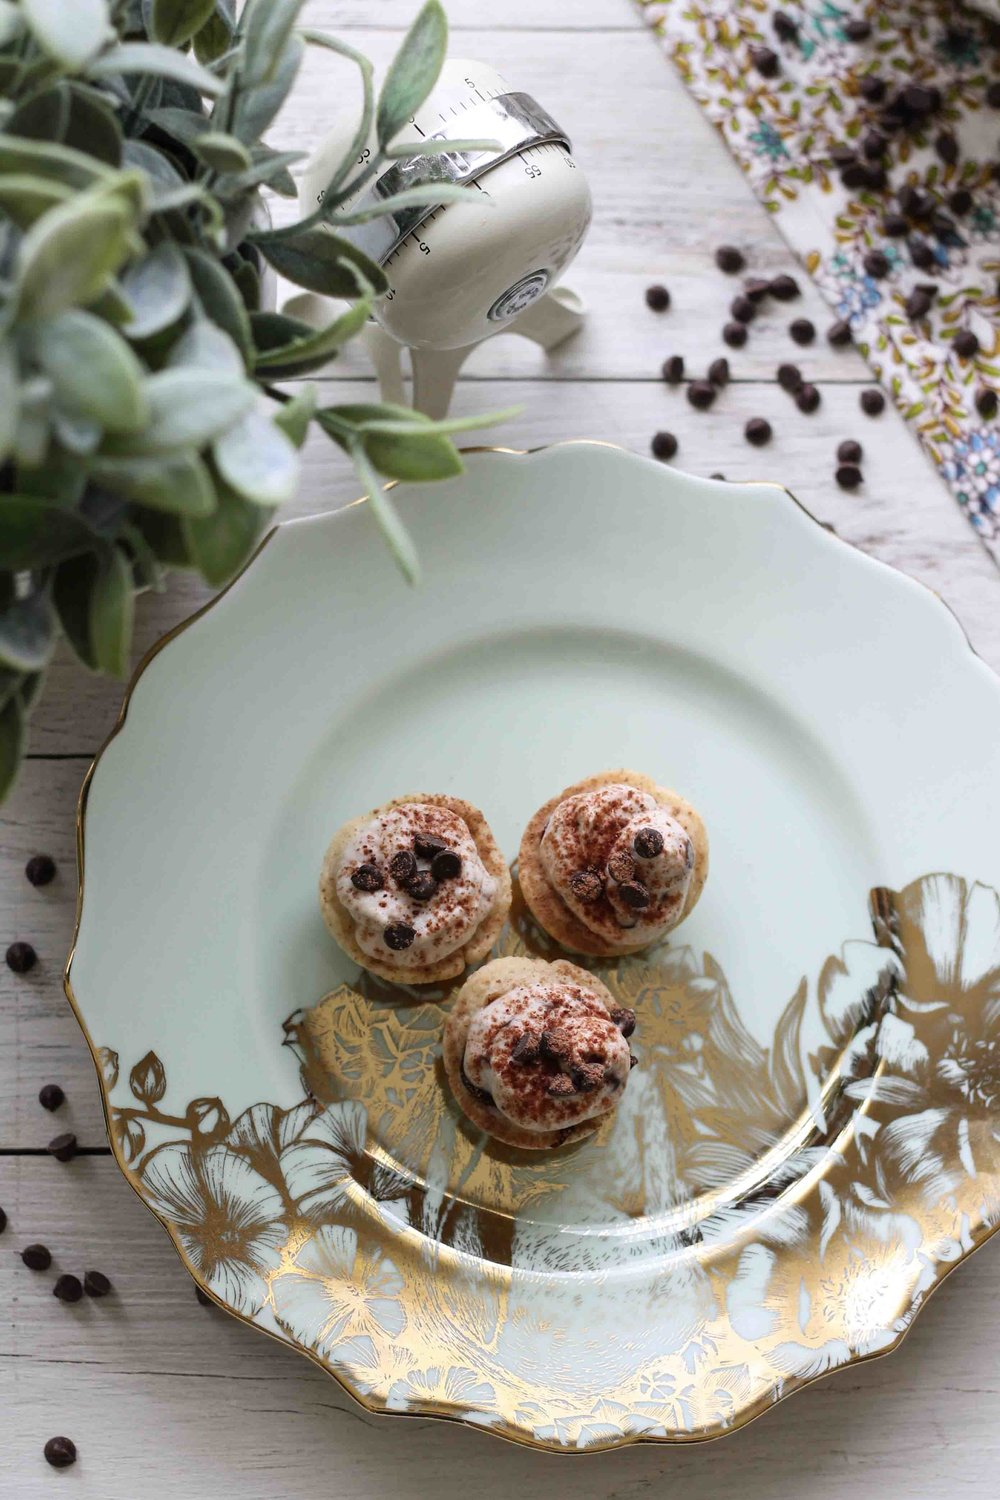 These adorable Chocolate Chip Cannoli Tartlets are the perfect grab-and-go treat for your next bridal or baby shower!